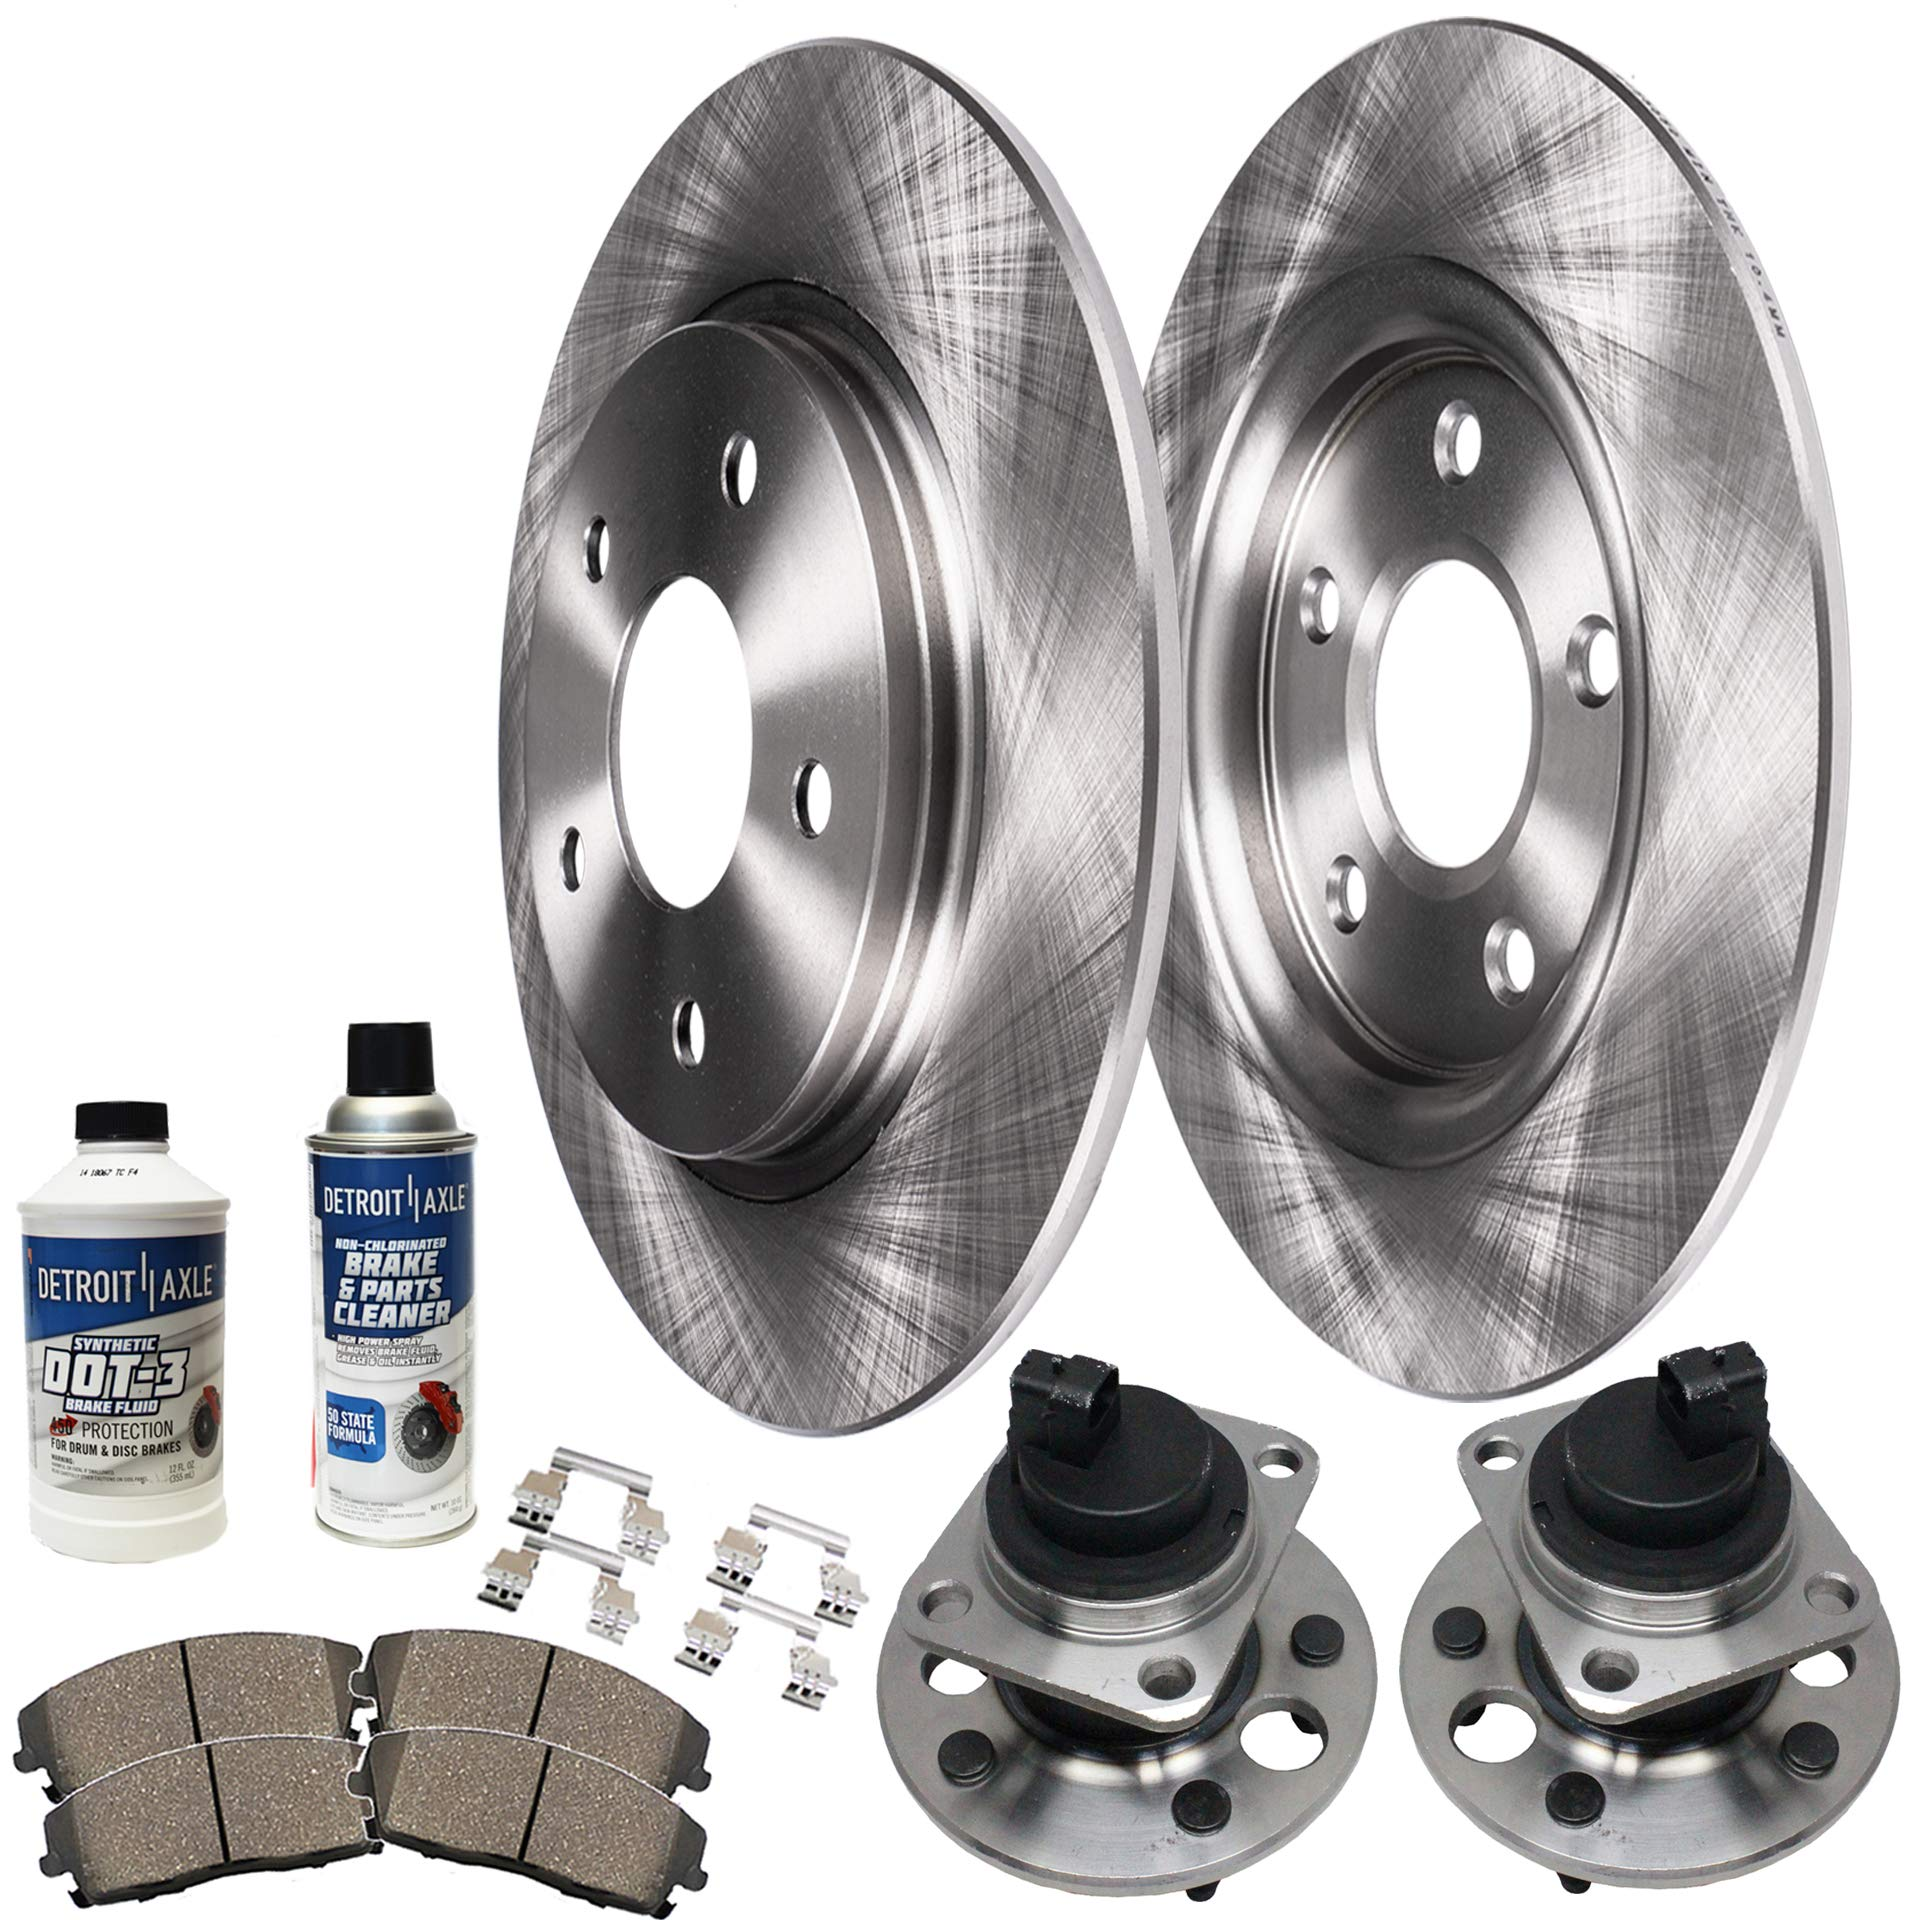 2004 Cadillac Deville See Desc. OE Replacement Rotors w//Ceramic Pads F+R